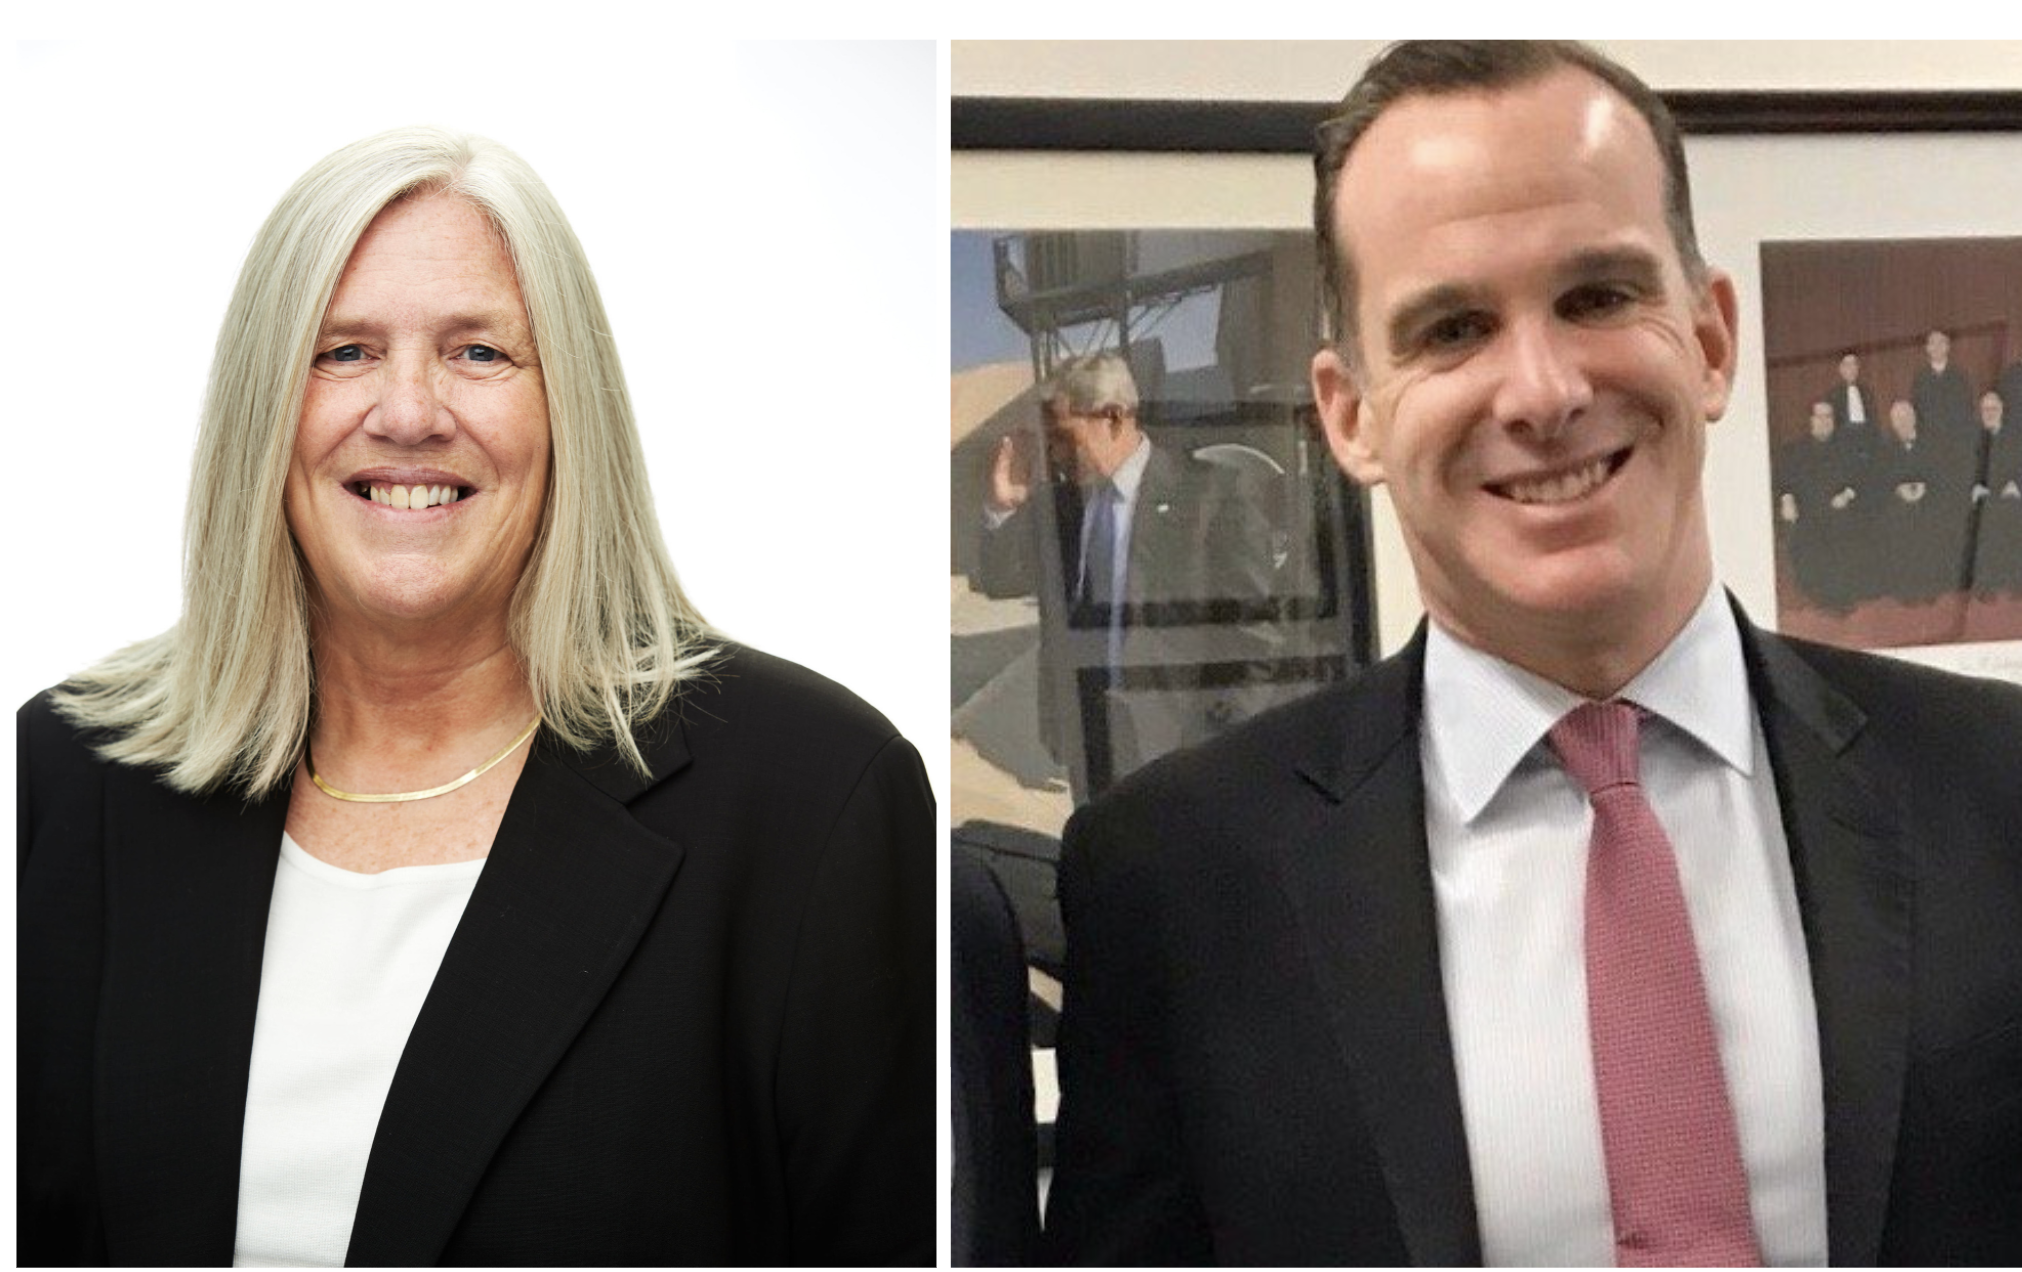 Welcoming Sue Gordon and Brett McGurk to Primer